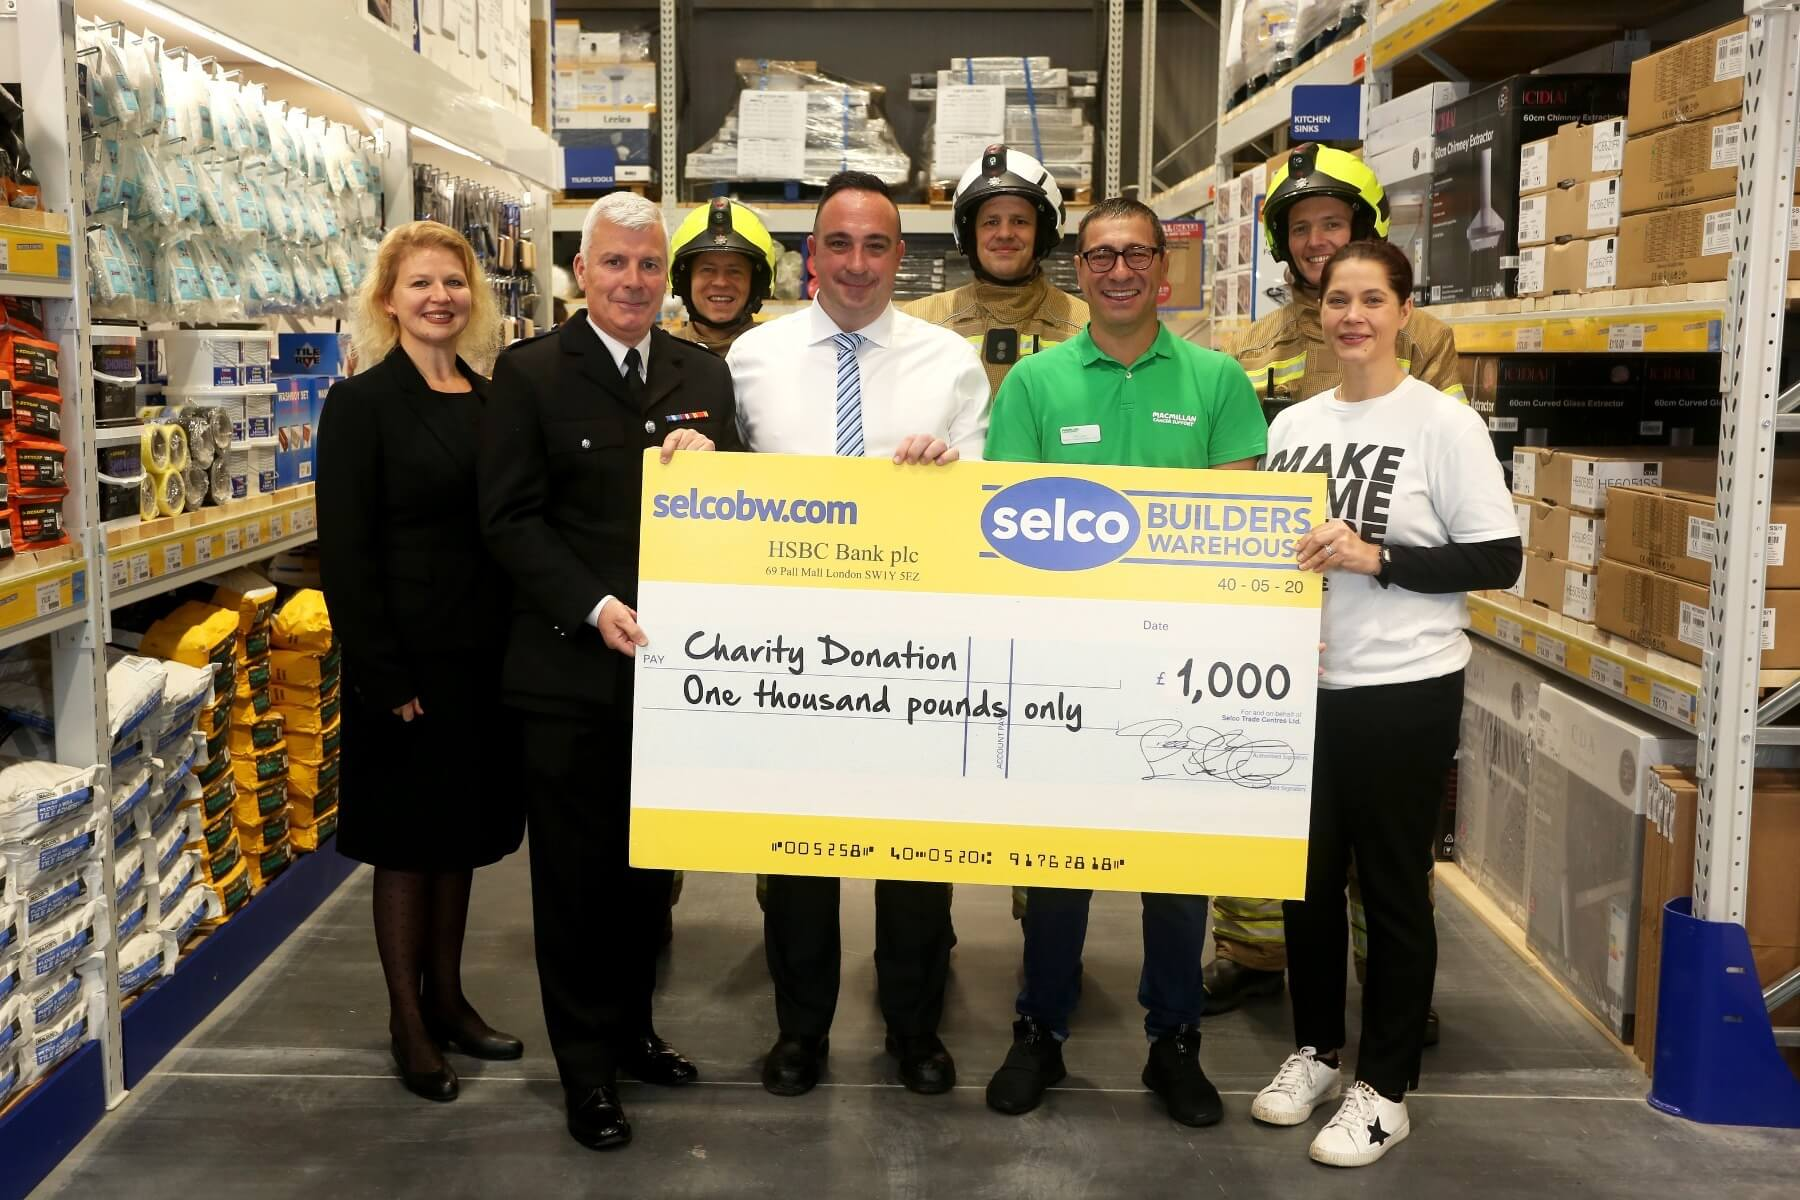 Selco presenting cheque to charity.